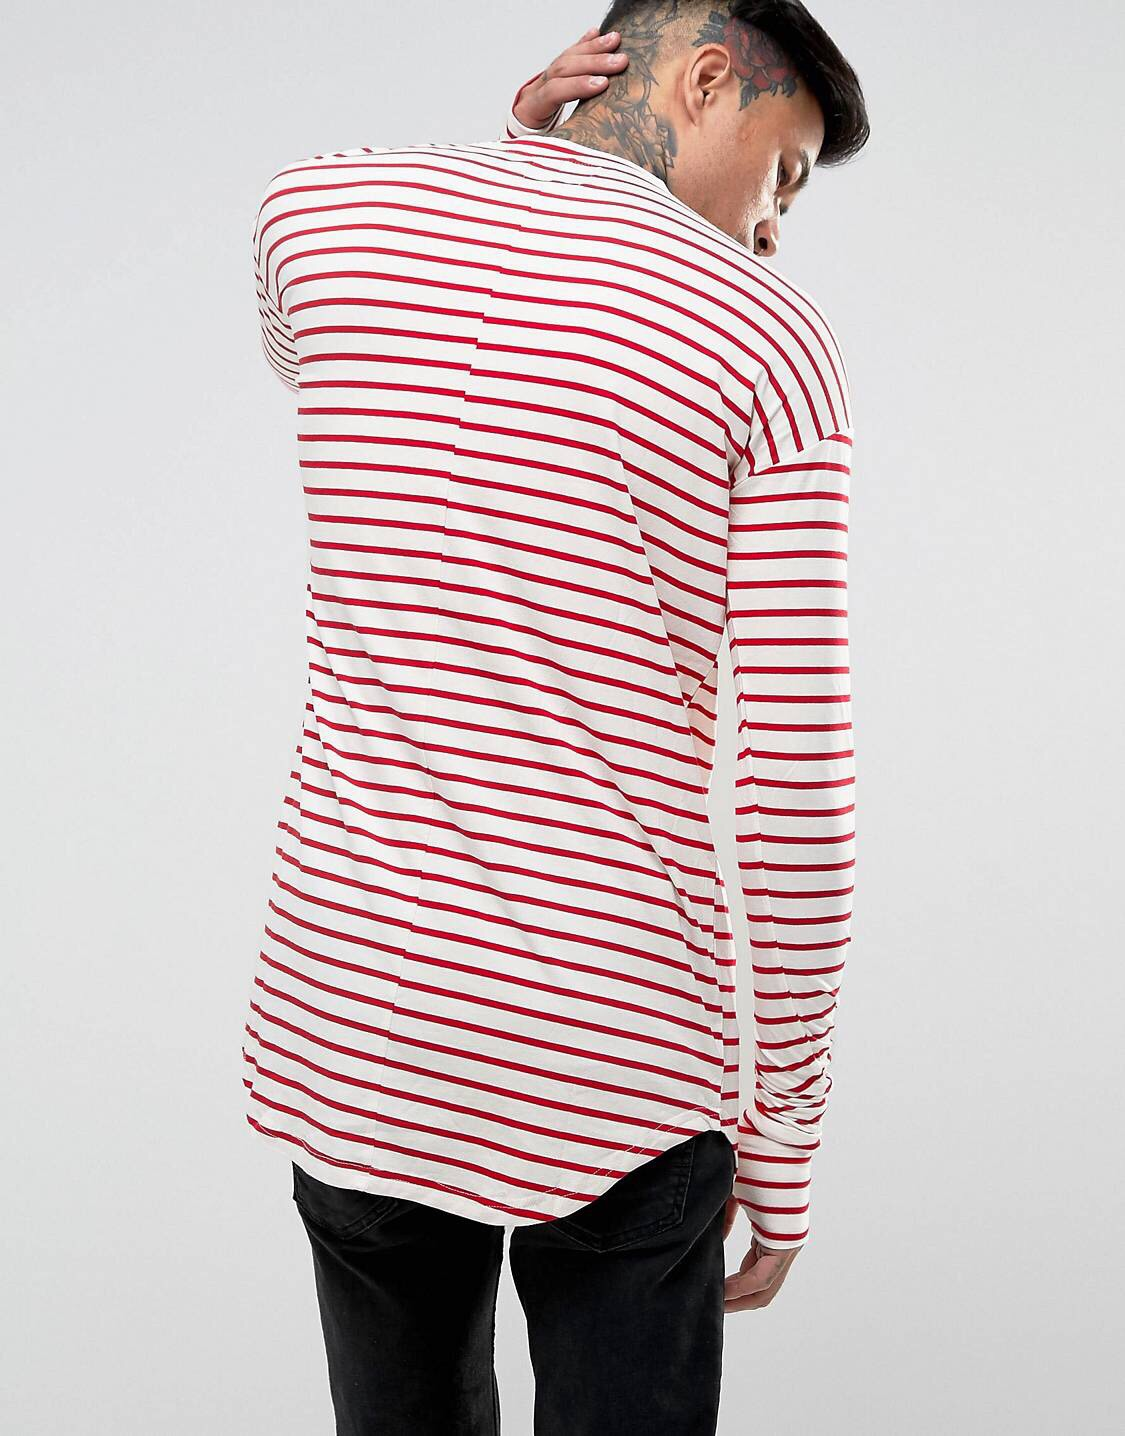 £33 Sixth June Long Sleeve - I need this cos of my obsession with stripes and also the sleeve details. But again, not at this price.I'm sure my mum is sending me